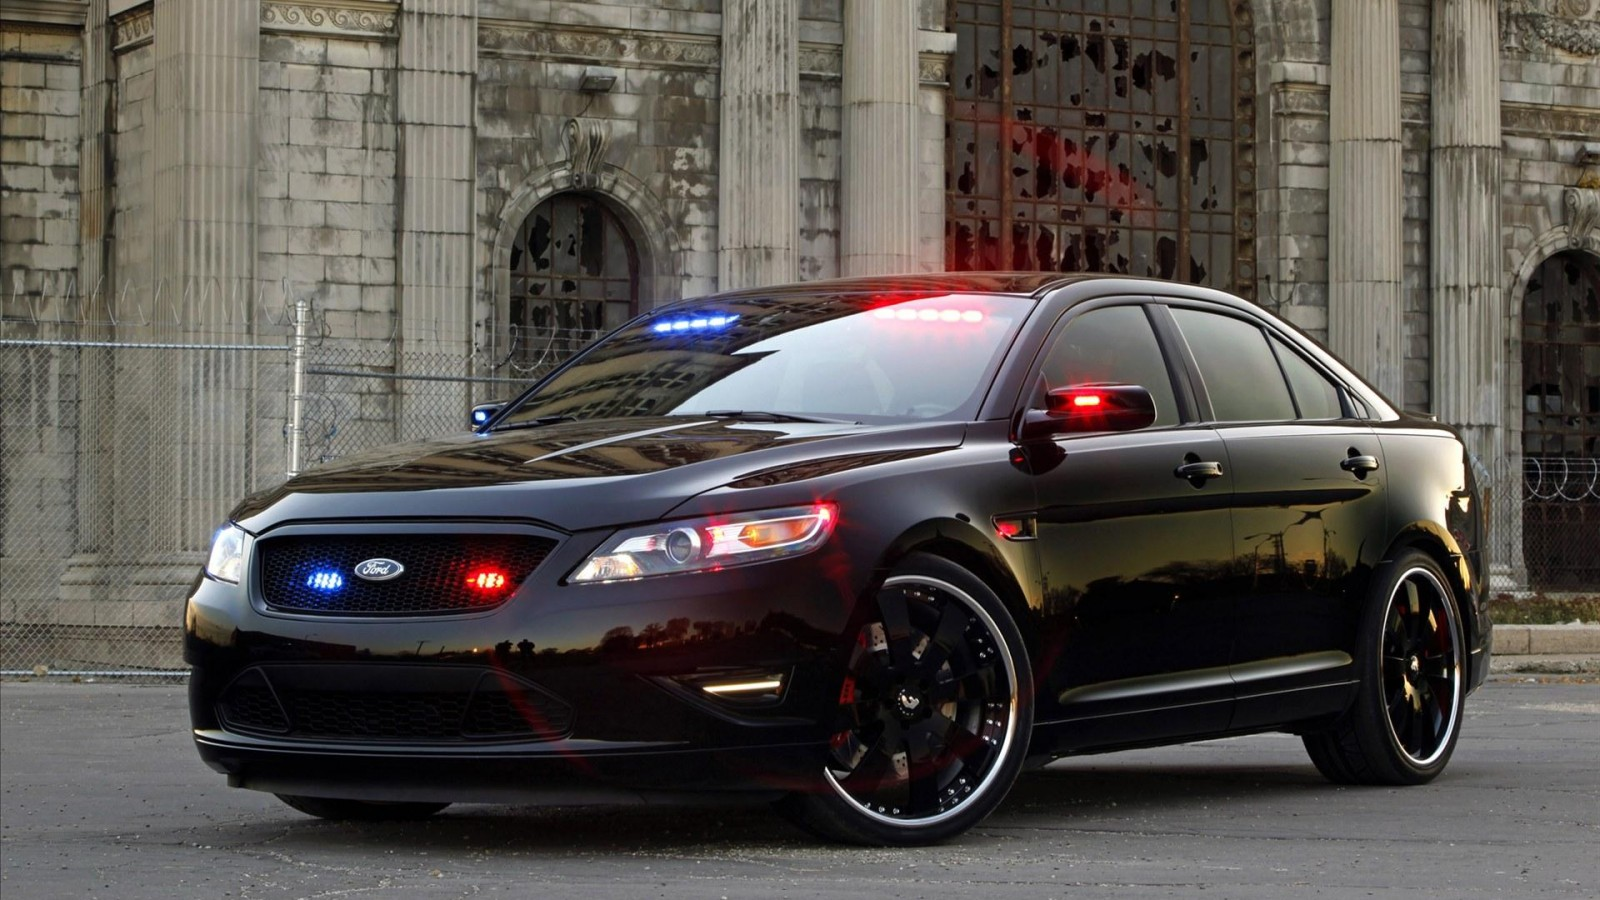 2018 Ford Stealth Police Interceptor Concept photo - 2